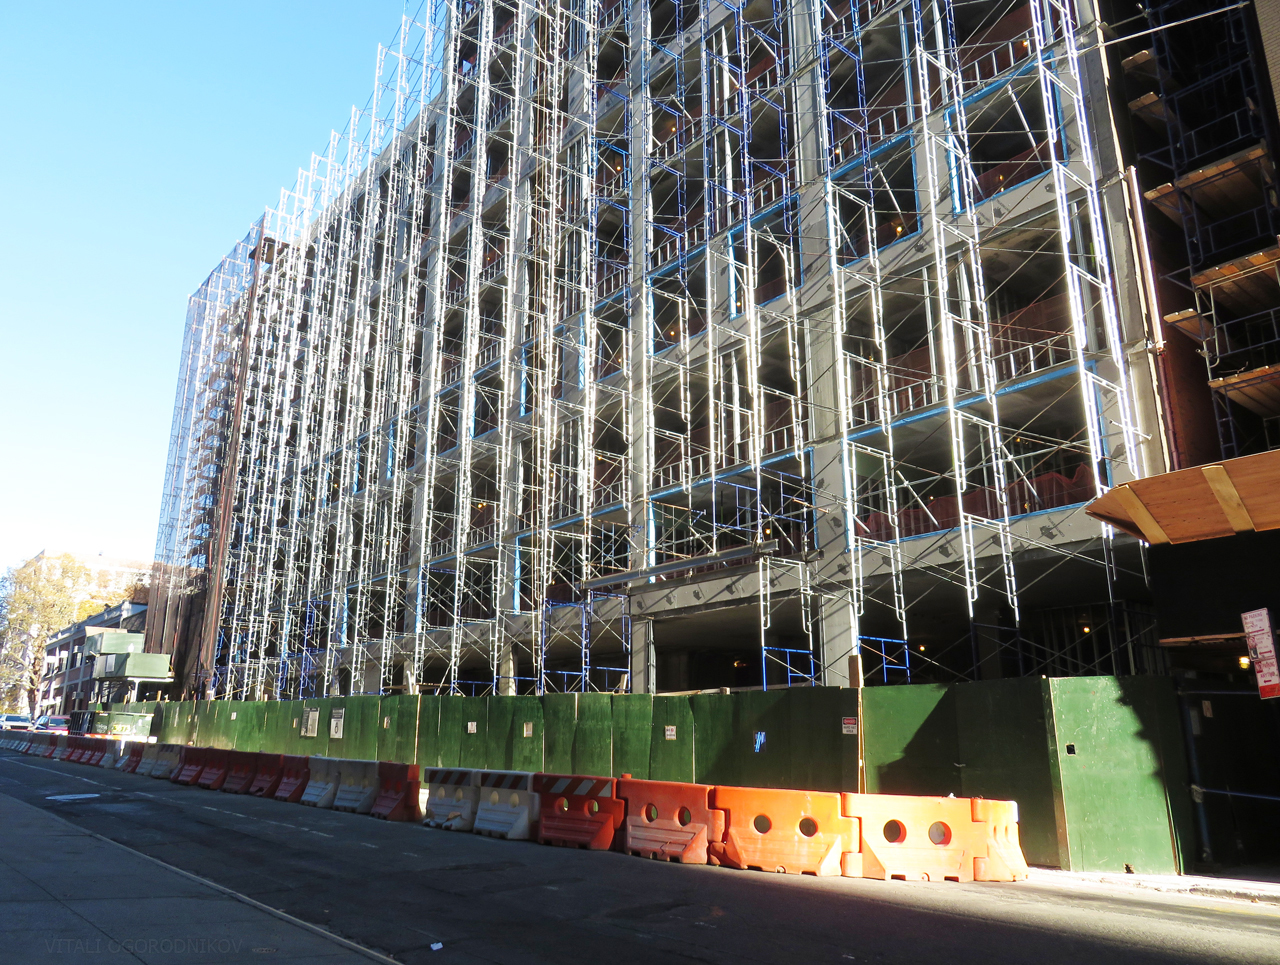 IMG_9056-41-21-28th-Street-2016-11-base-small-wmark